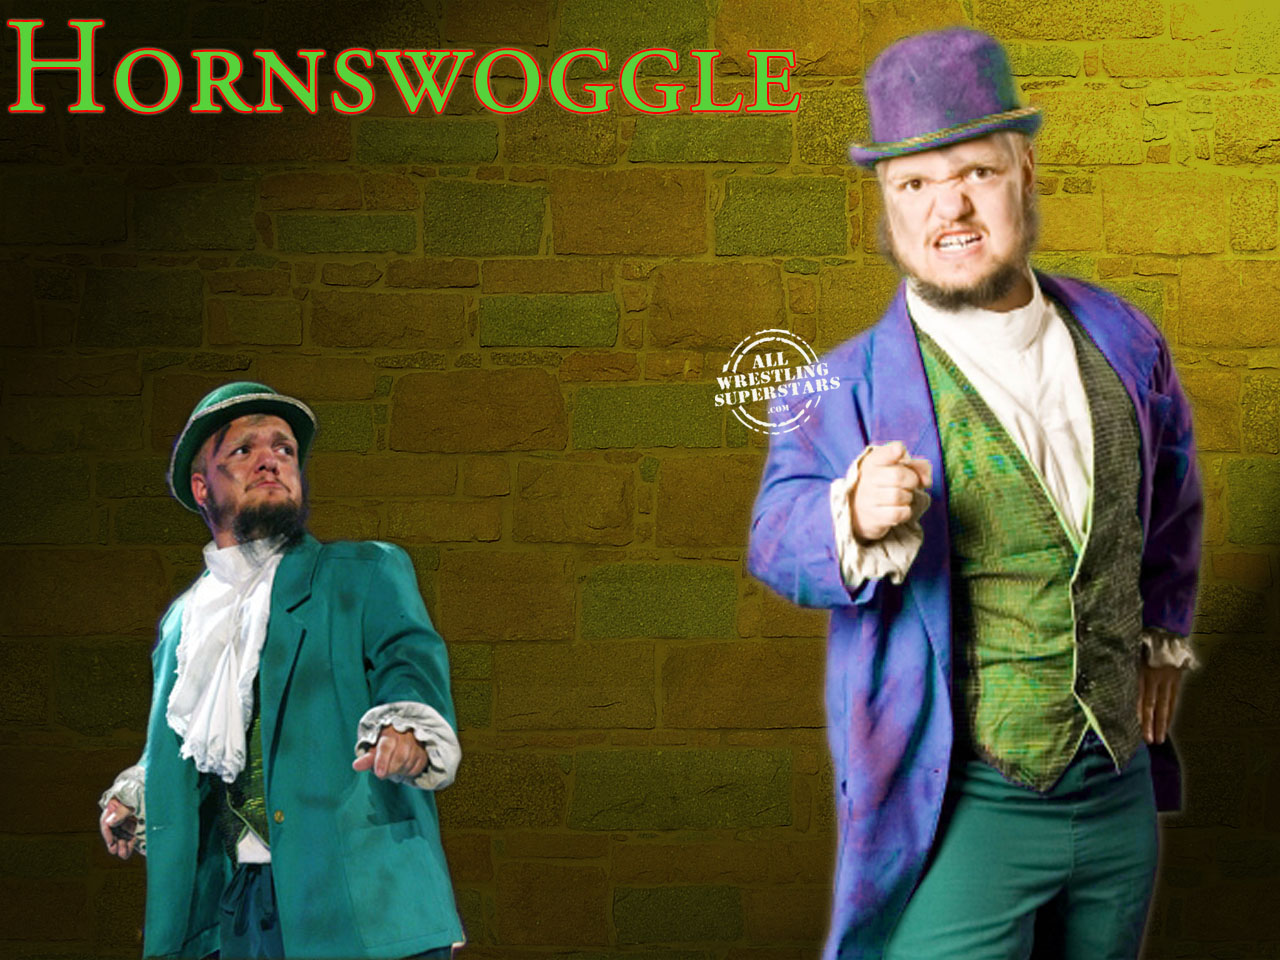 WWE WALLPAPERS: Hornswoggle | wwe hornswoggle | wwe | wwe ... Hornswoggle